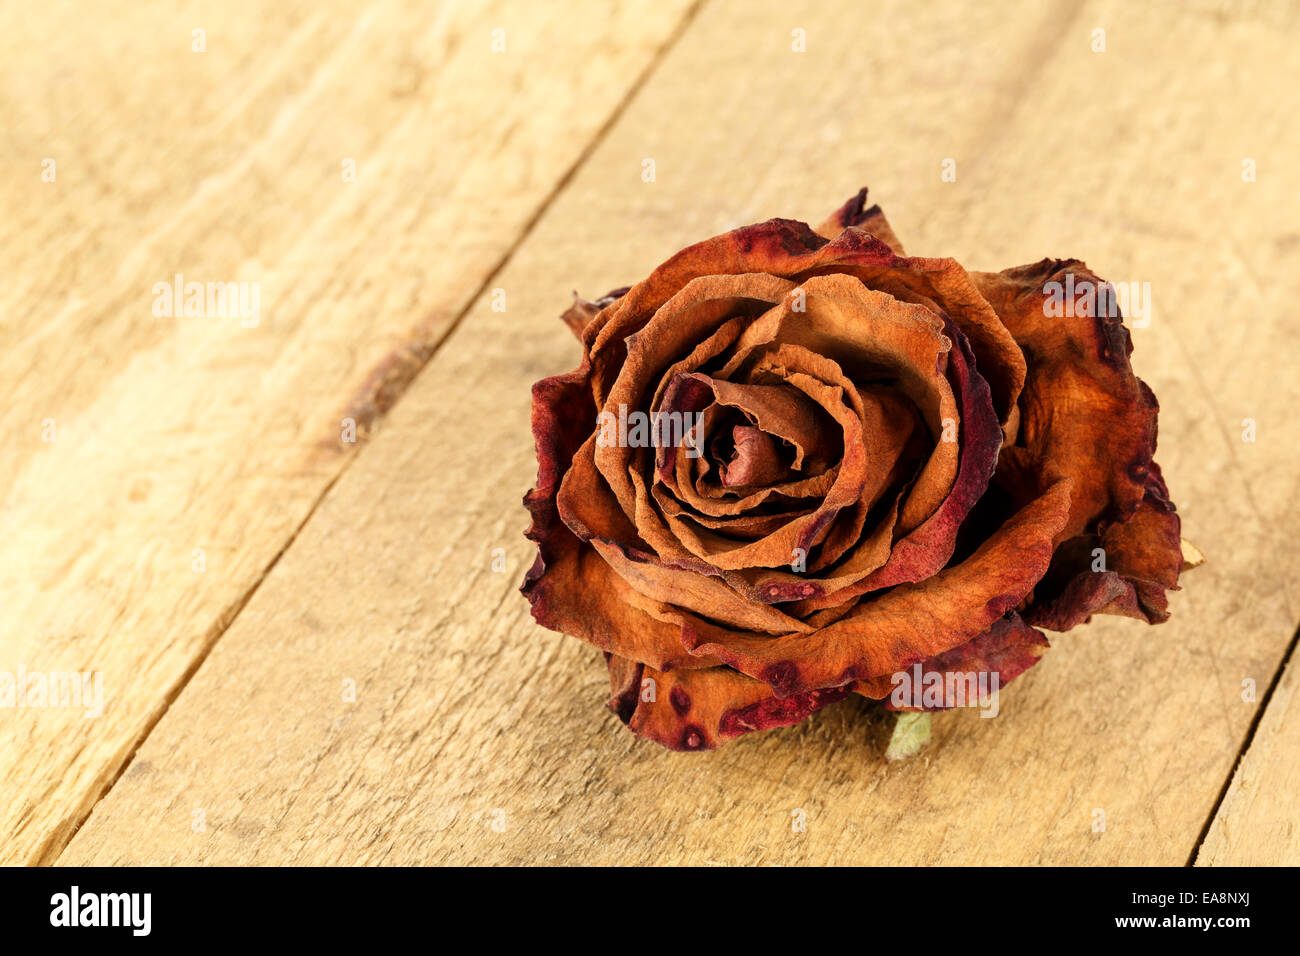 Dried flower of rose - Stock Image